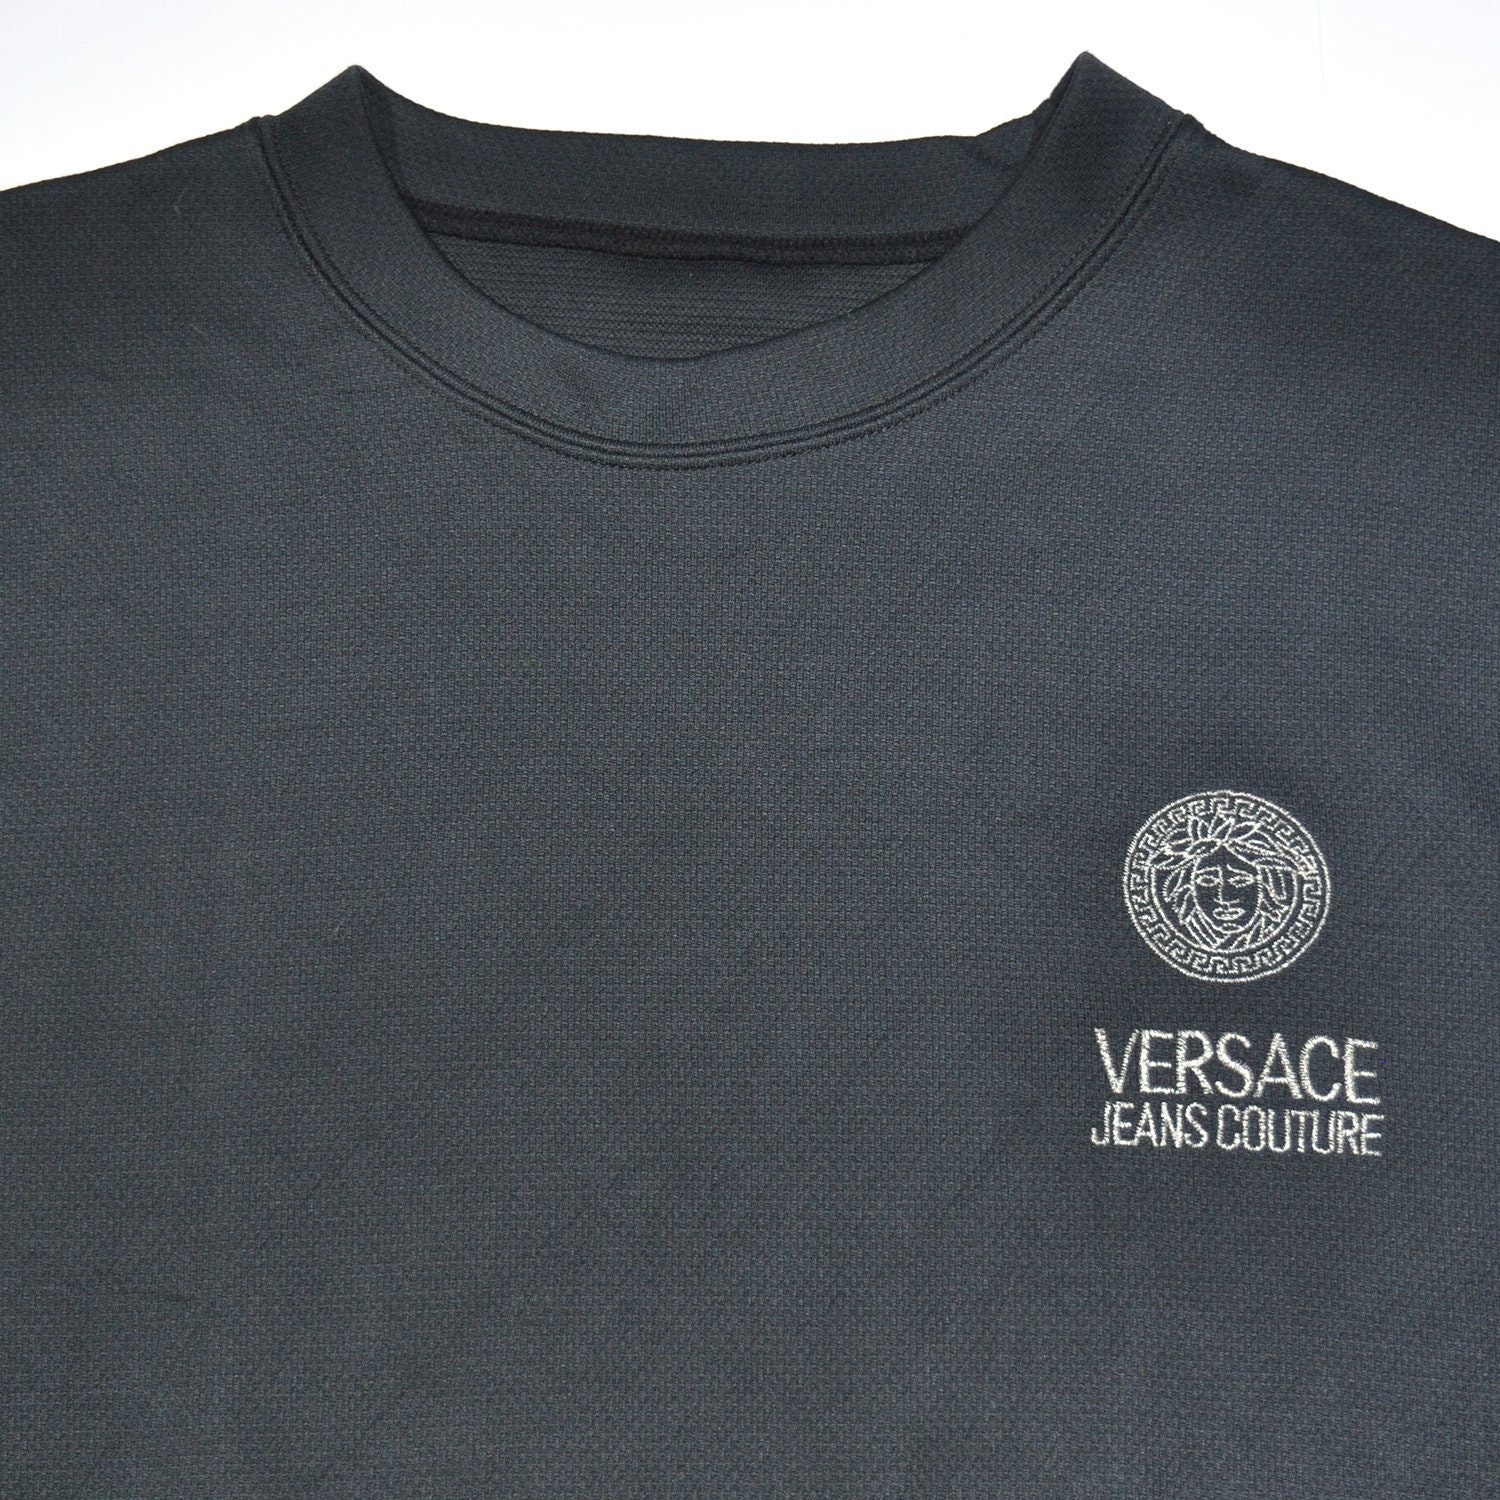 Vintage versace jeans coutore black long sleeve shirt etsy jpg 1500x1500  Versace clothing tag 9817f8c079a6c